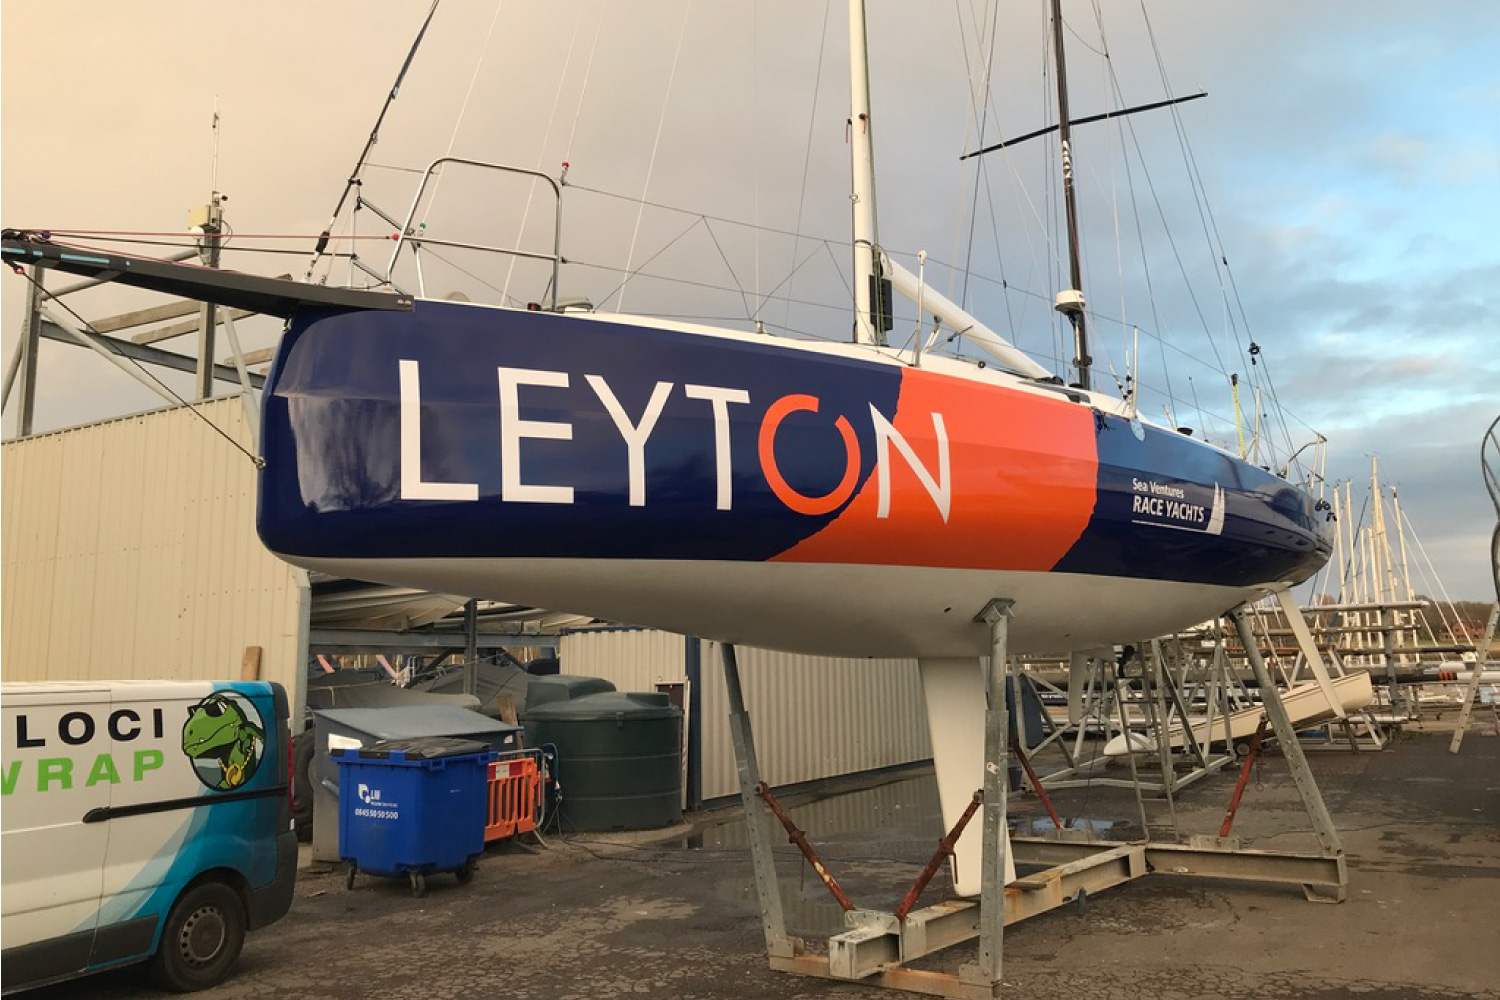 LEYTON Sponsored Sunfast 3300 Sailing Boat With A Full Vinyl Yacht Hull Wrap Velociwrap